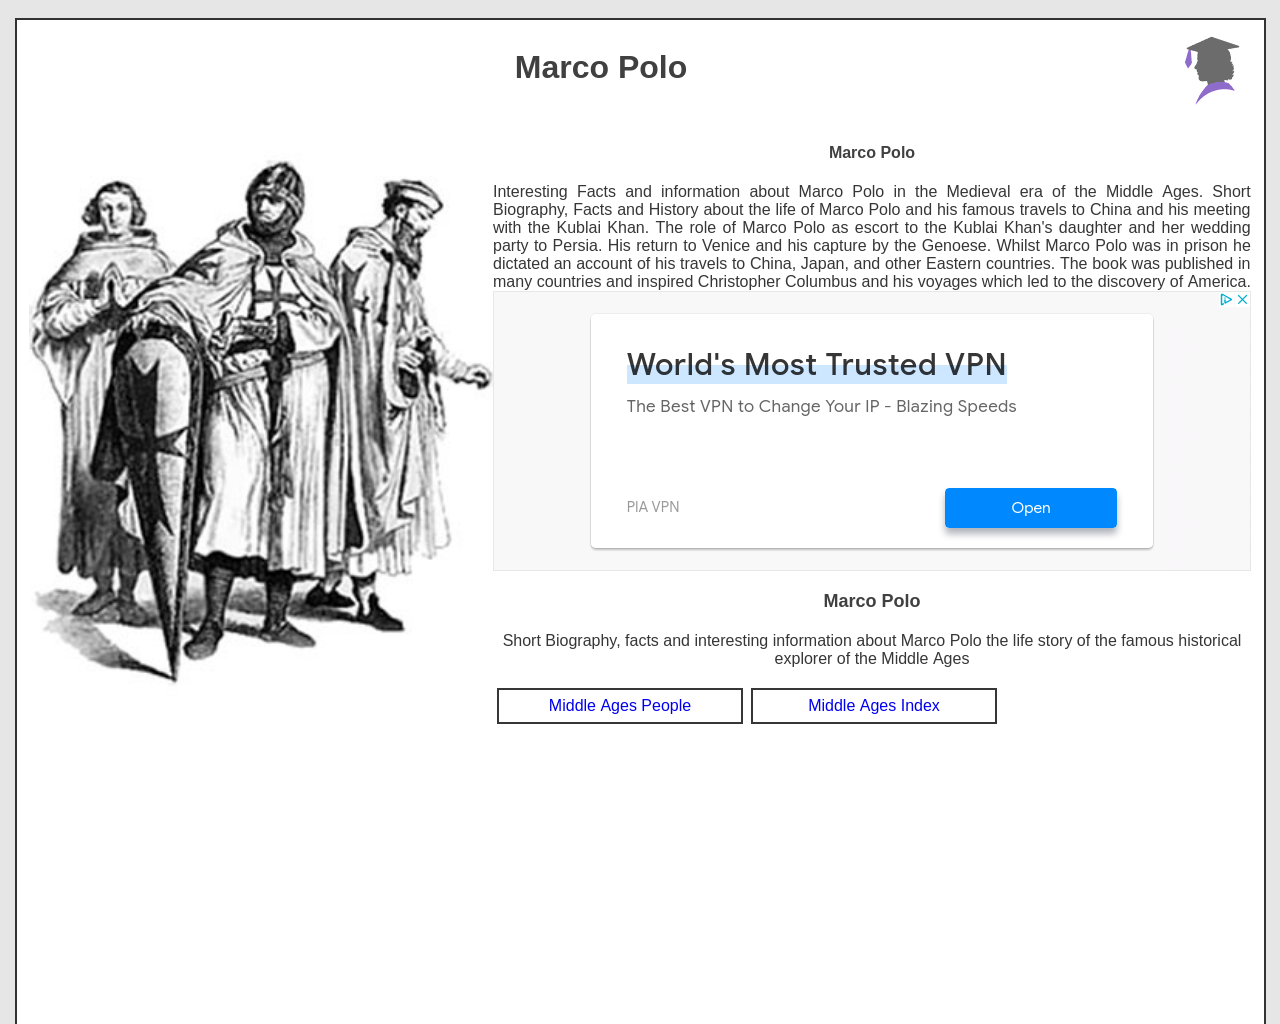 Marco Polo Facts